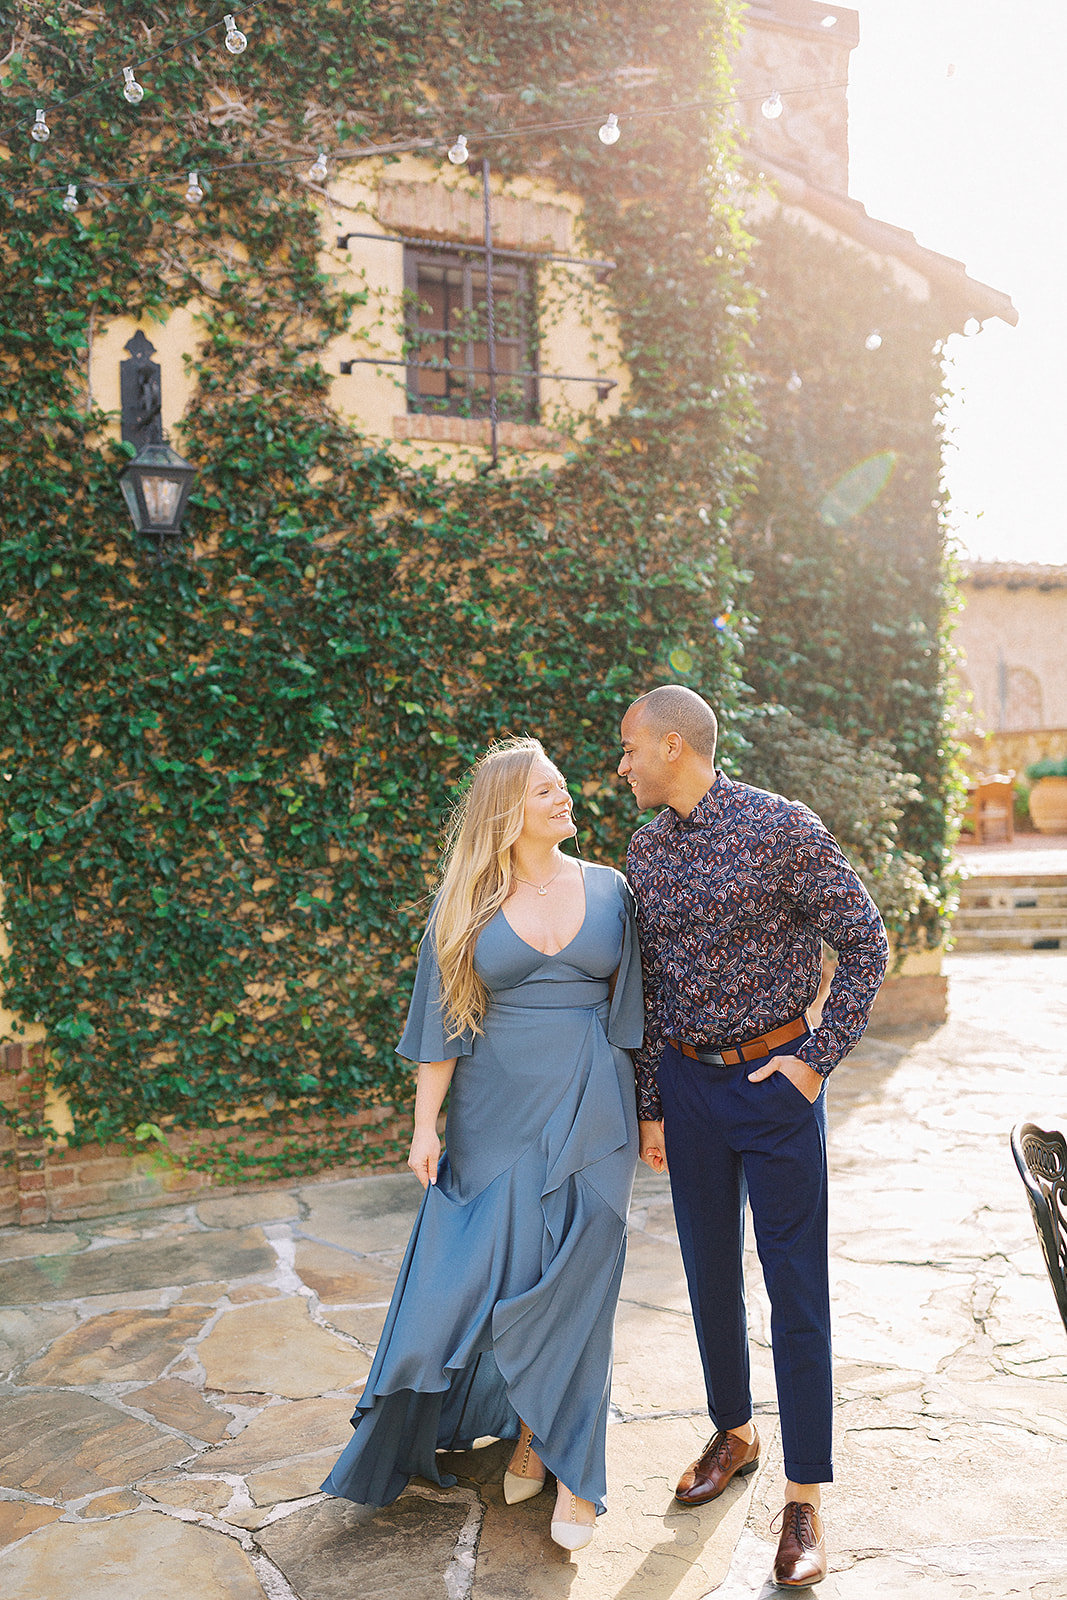 Rachel_+_Manny_Bello_Engagement_Session_Bella_Collina_Photographer_Casie_Marie_Photography-10